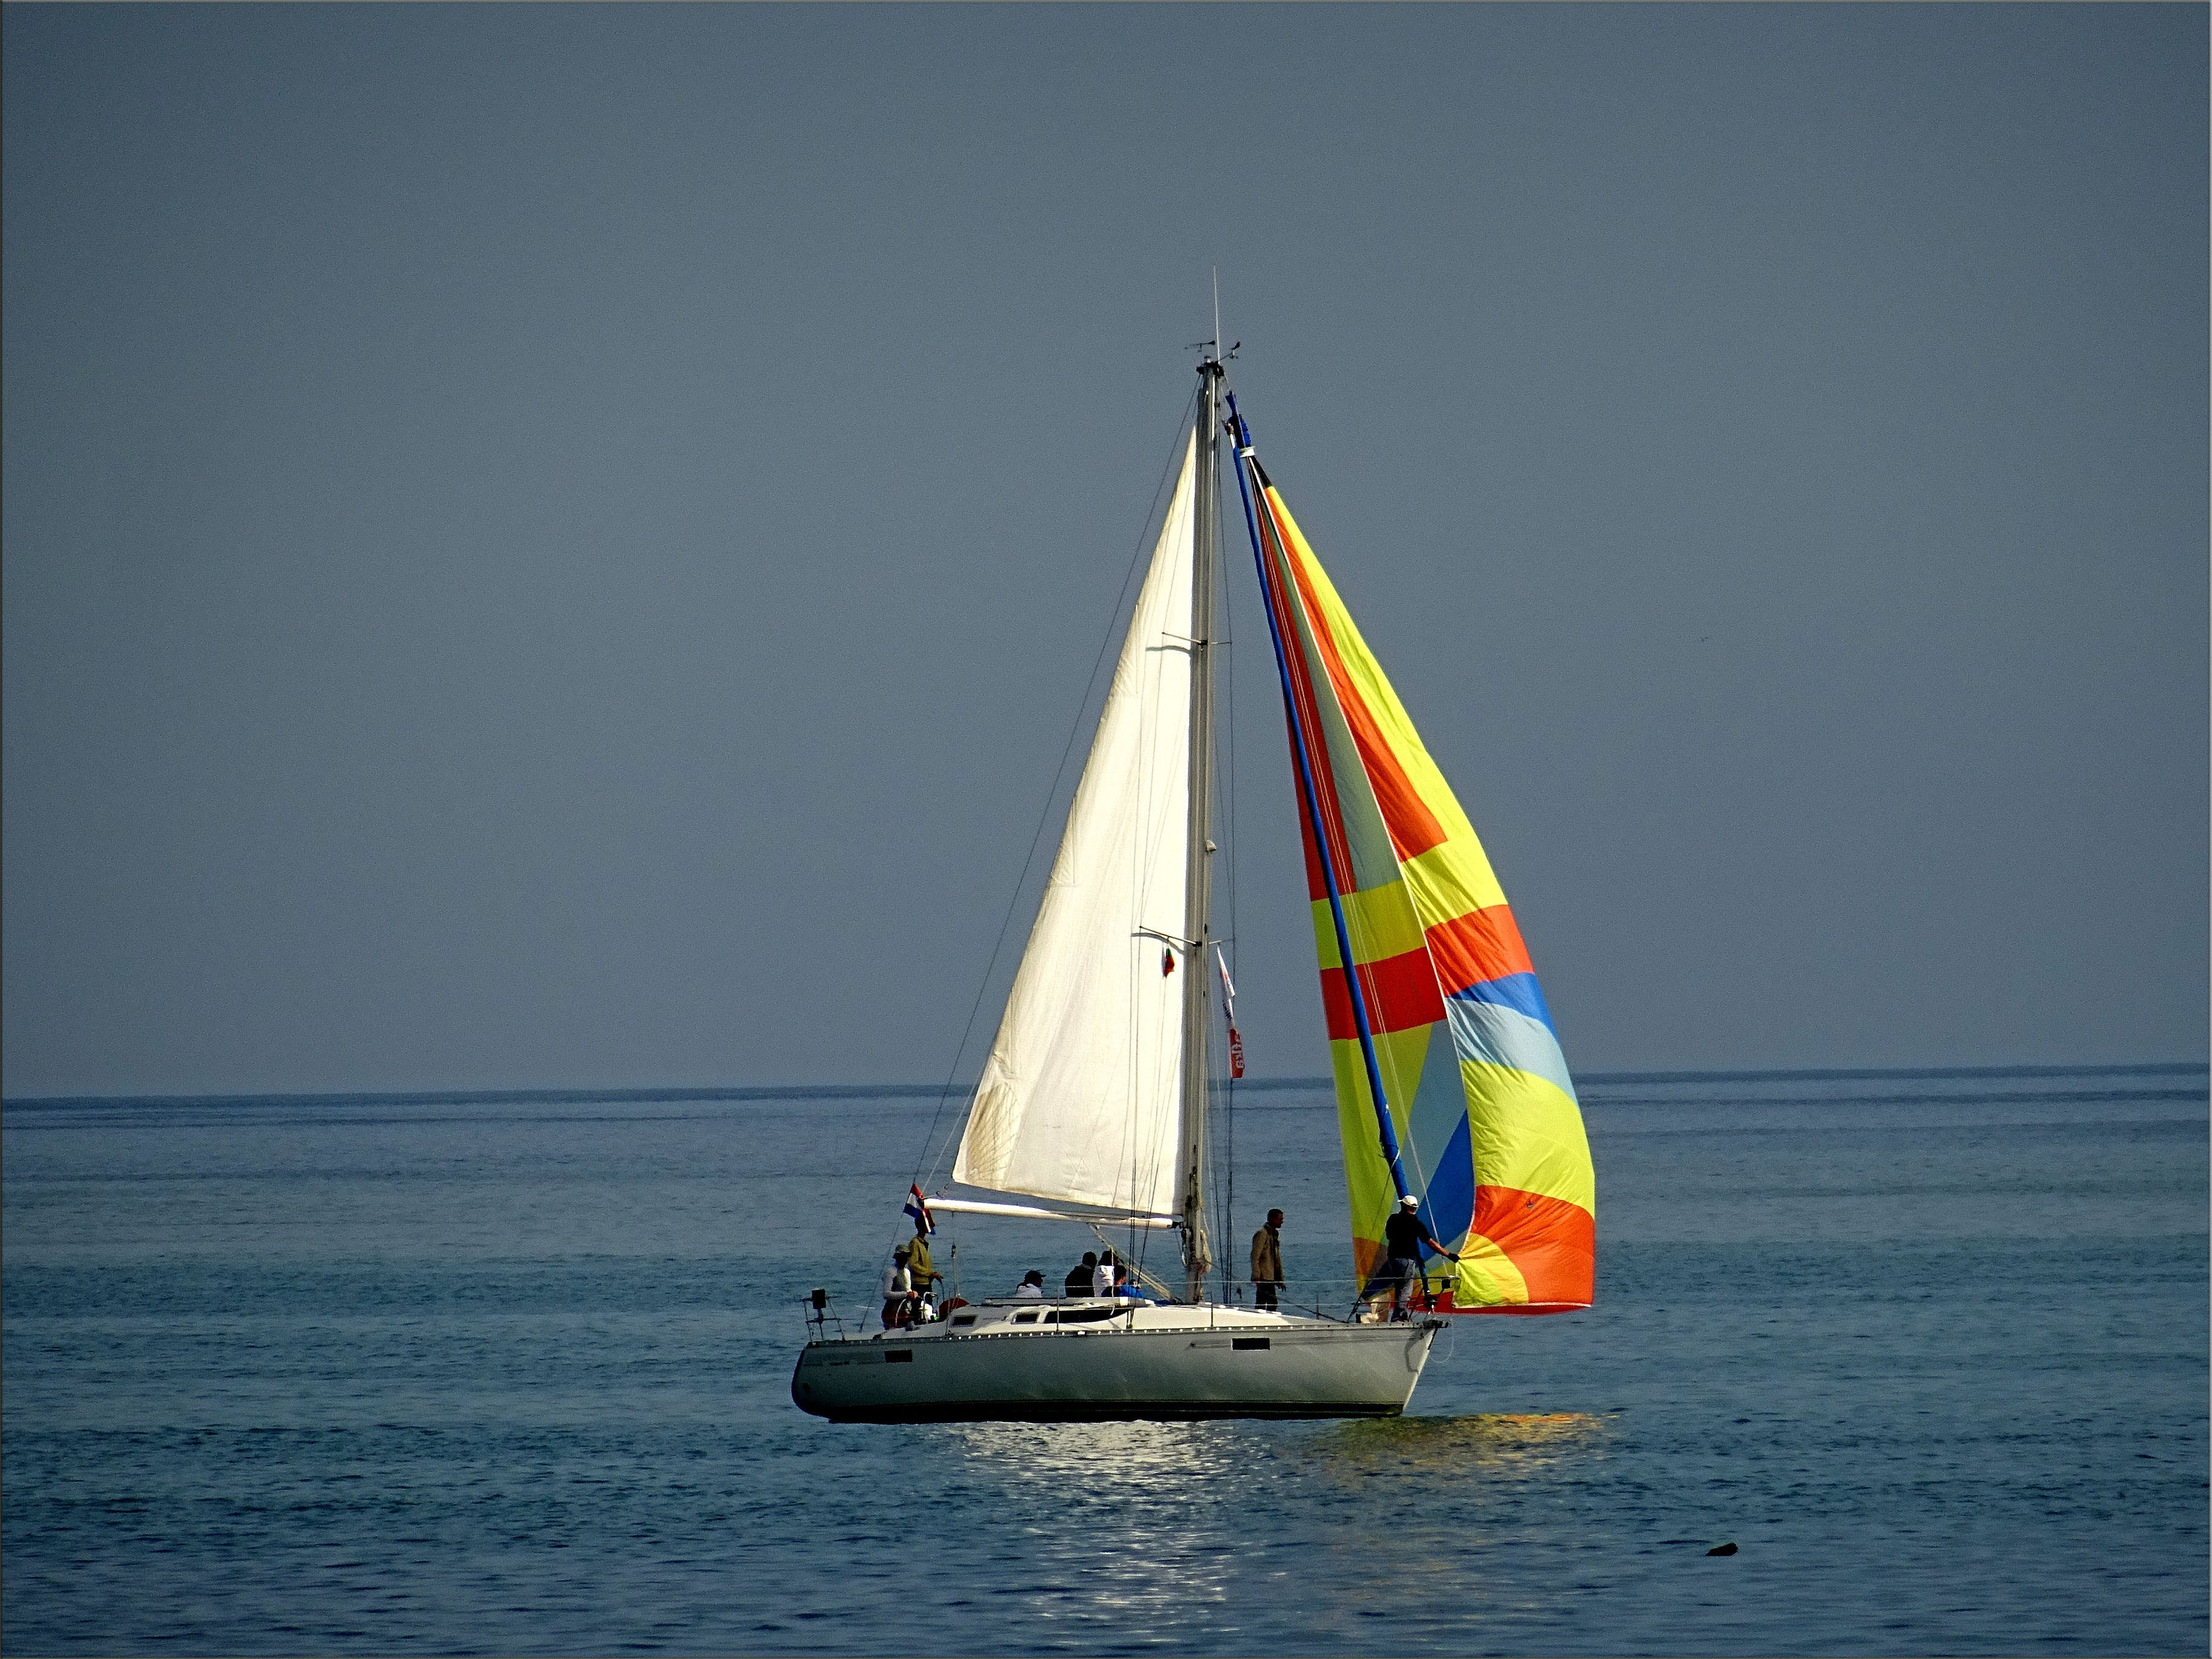 Gray and White Sail Boat With 5 Person Riding on the Middle of the Body of Water